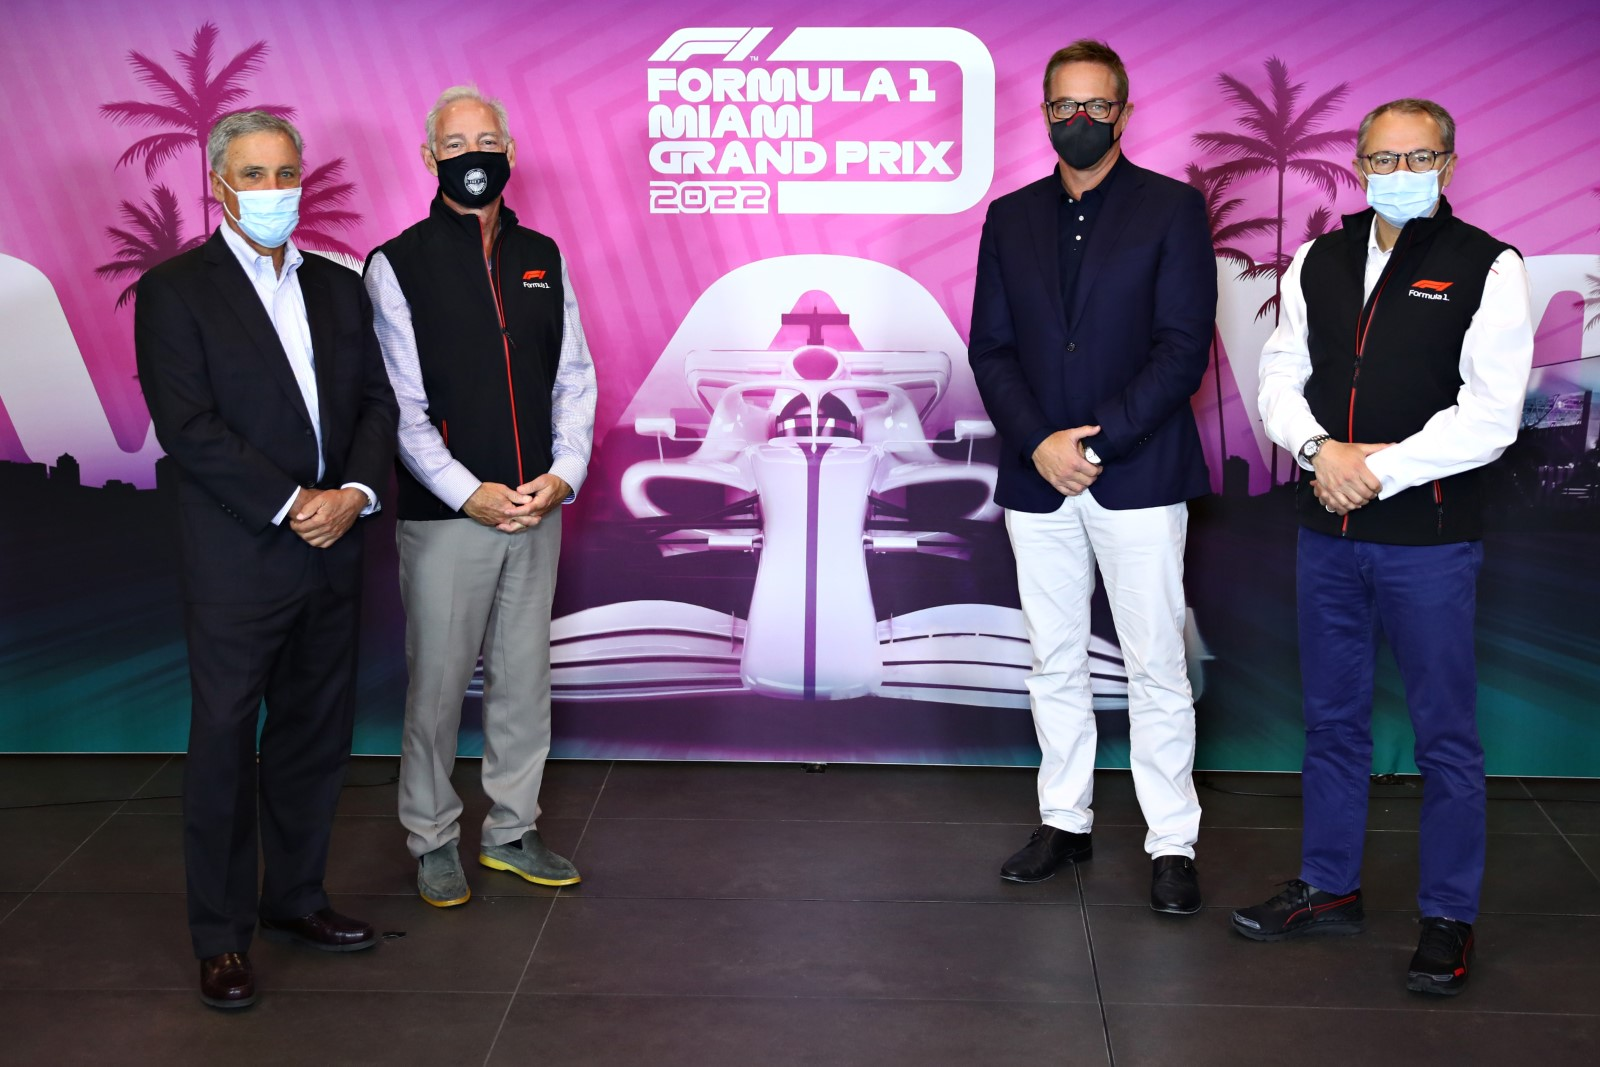 Tom Garfinkel further says that the Miami GP 2022 event will require a lot of hardwork and planning